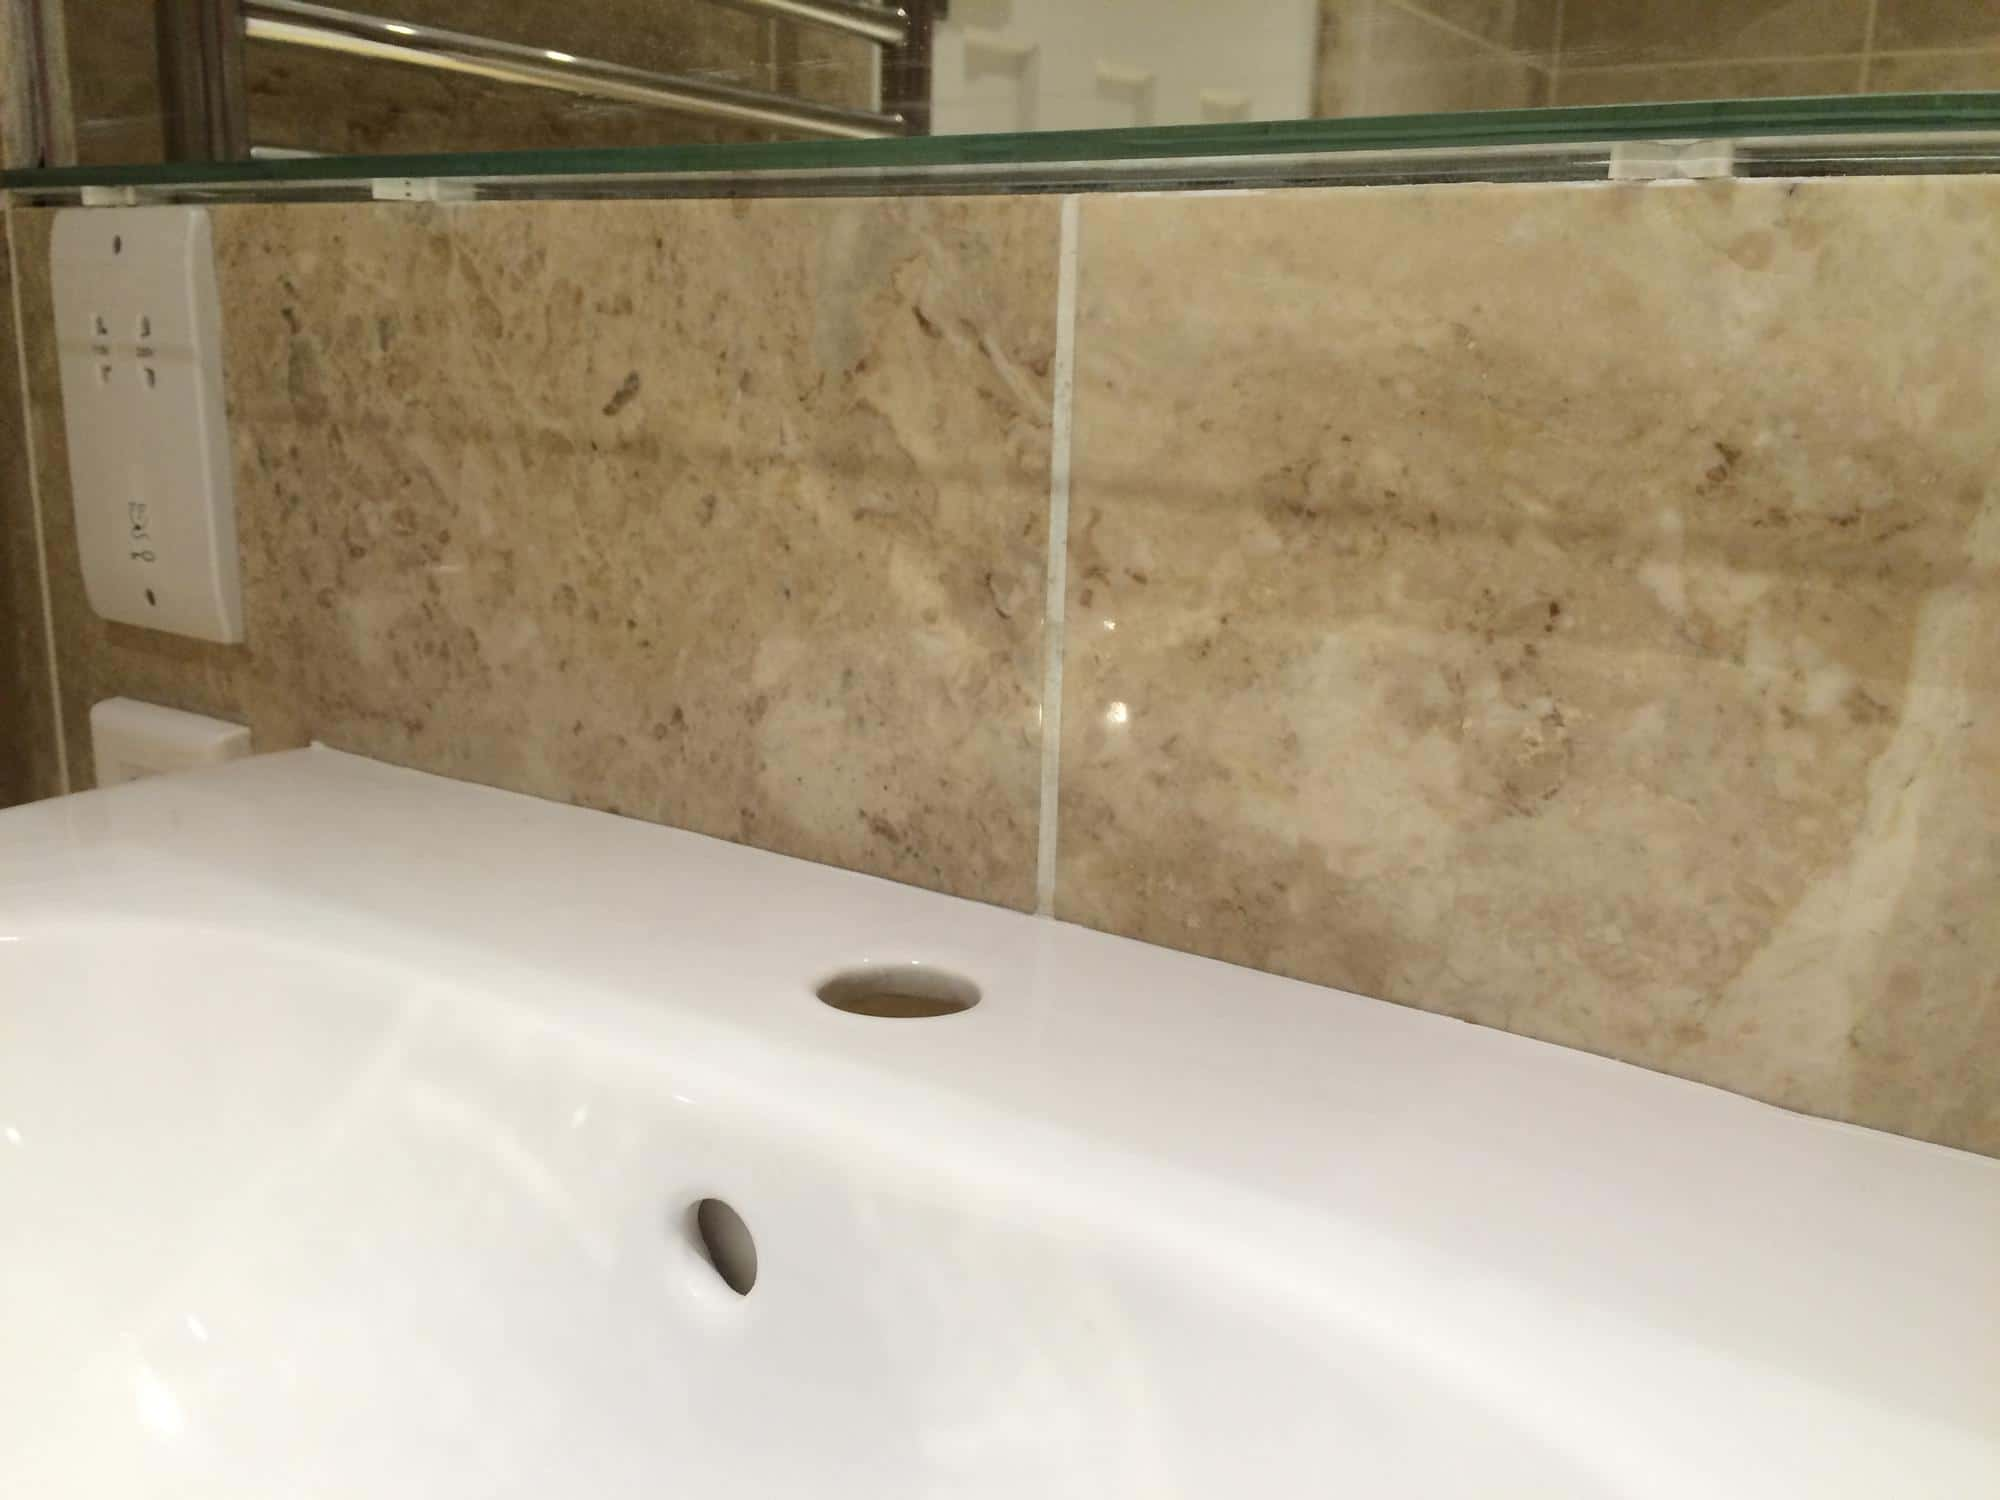 Bathroom wall tile stain removal | Bespoke Repairs